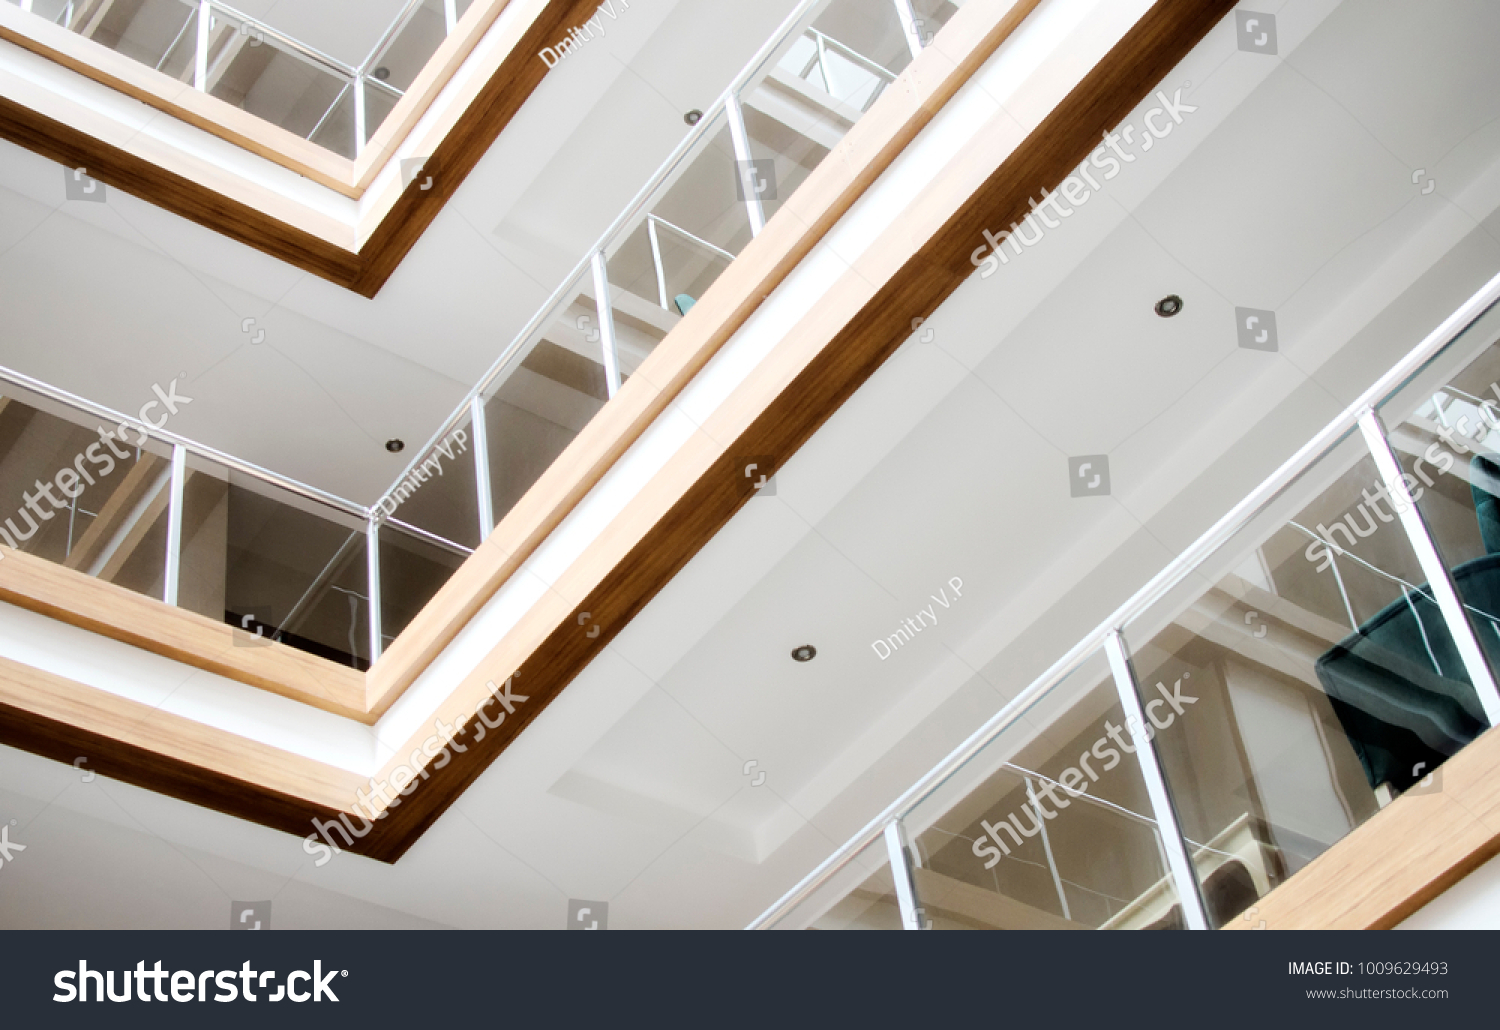 Details Interior Modern Hotel Roof Inside Stock Photo Edit Now 1009629493